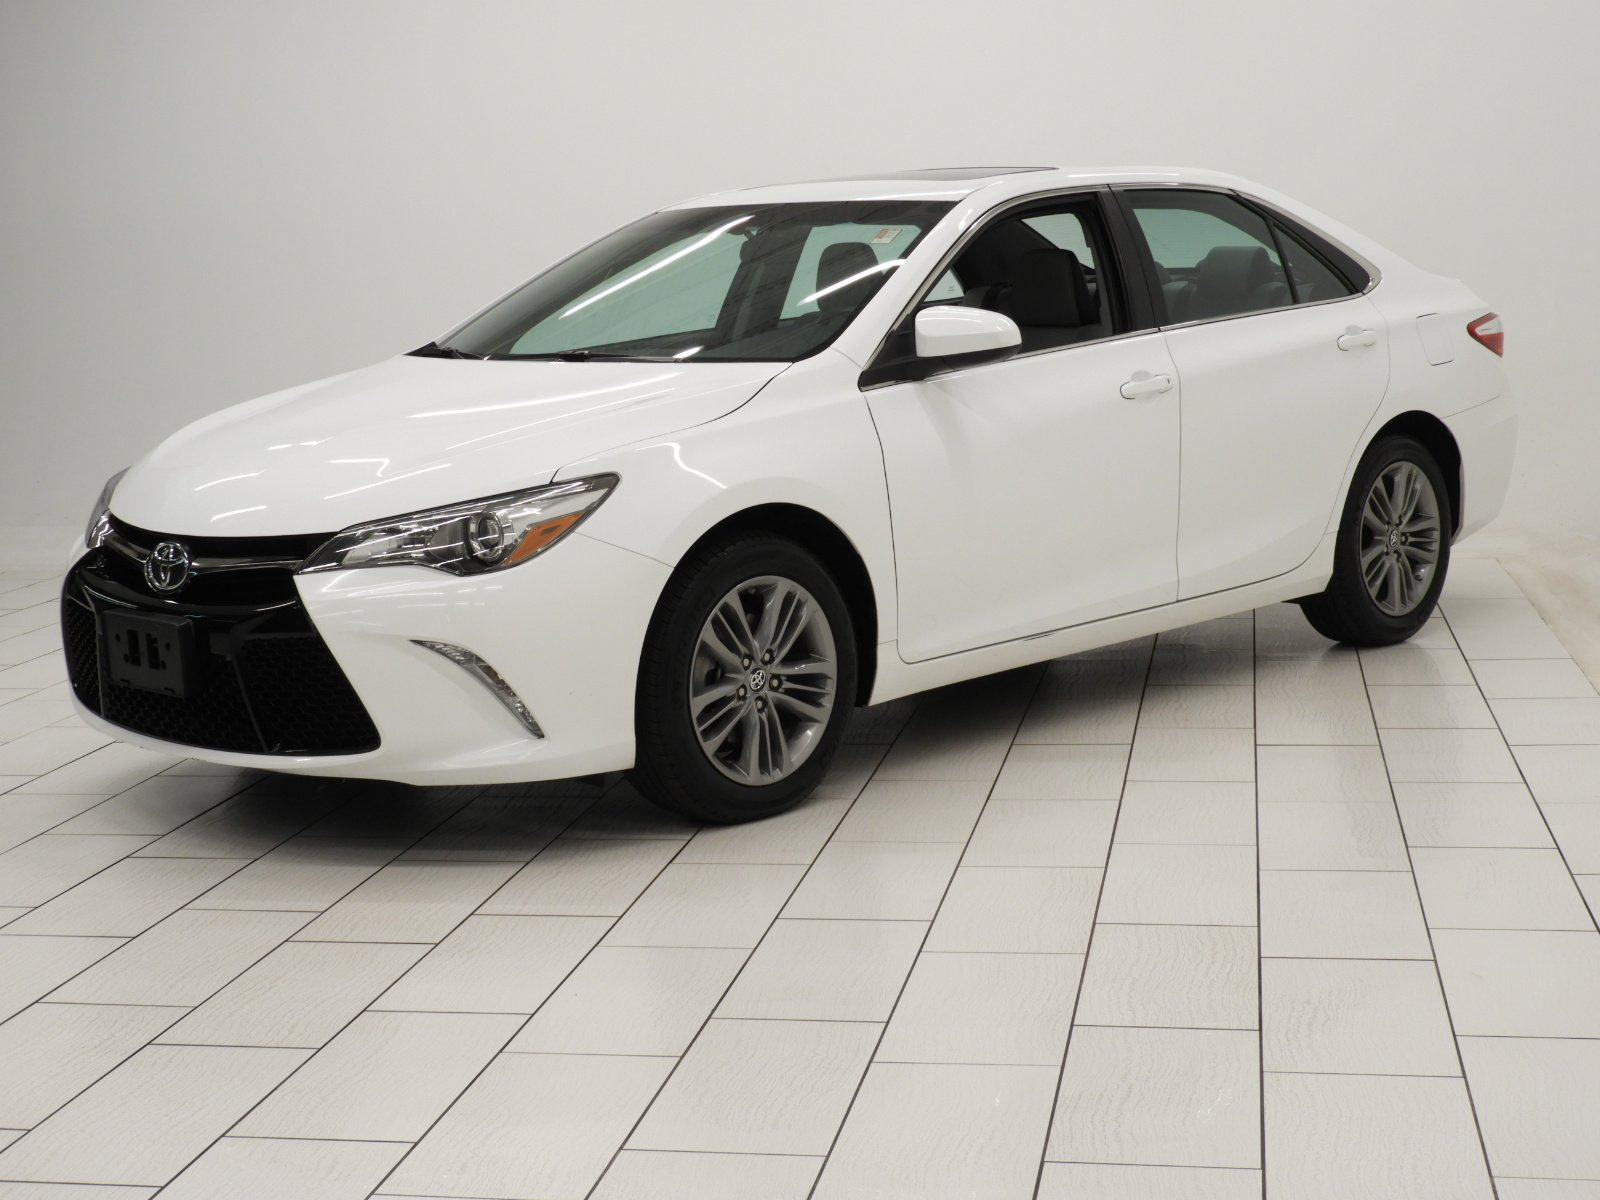 2015 toyota camry. certified preowned 2015 toyota camry se i